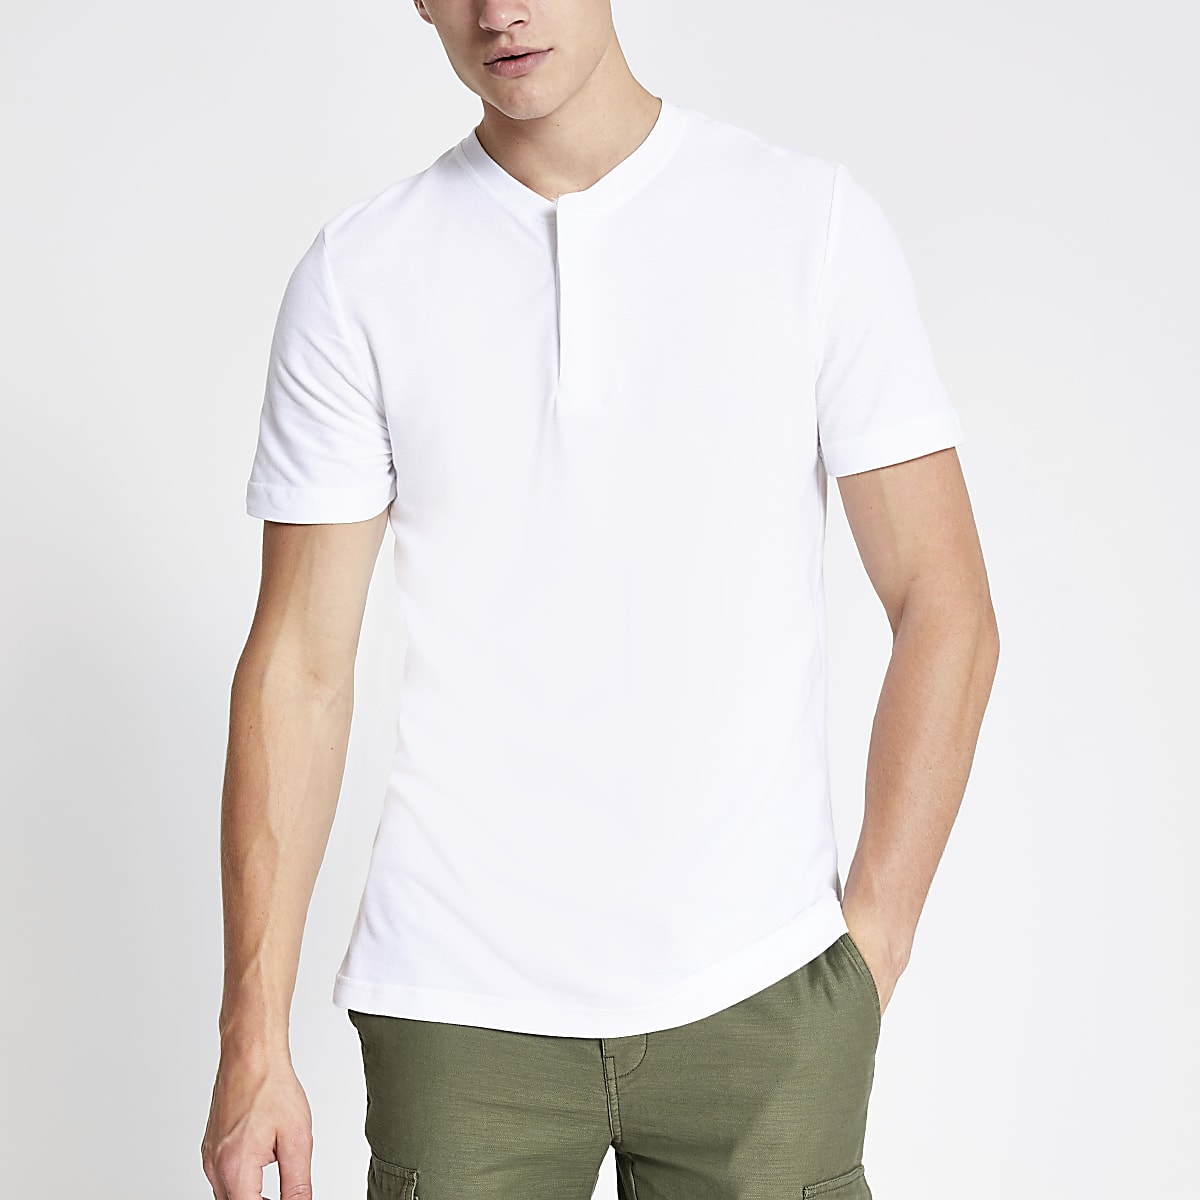 Jack and Jones white collarless polo shirt